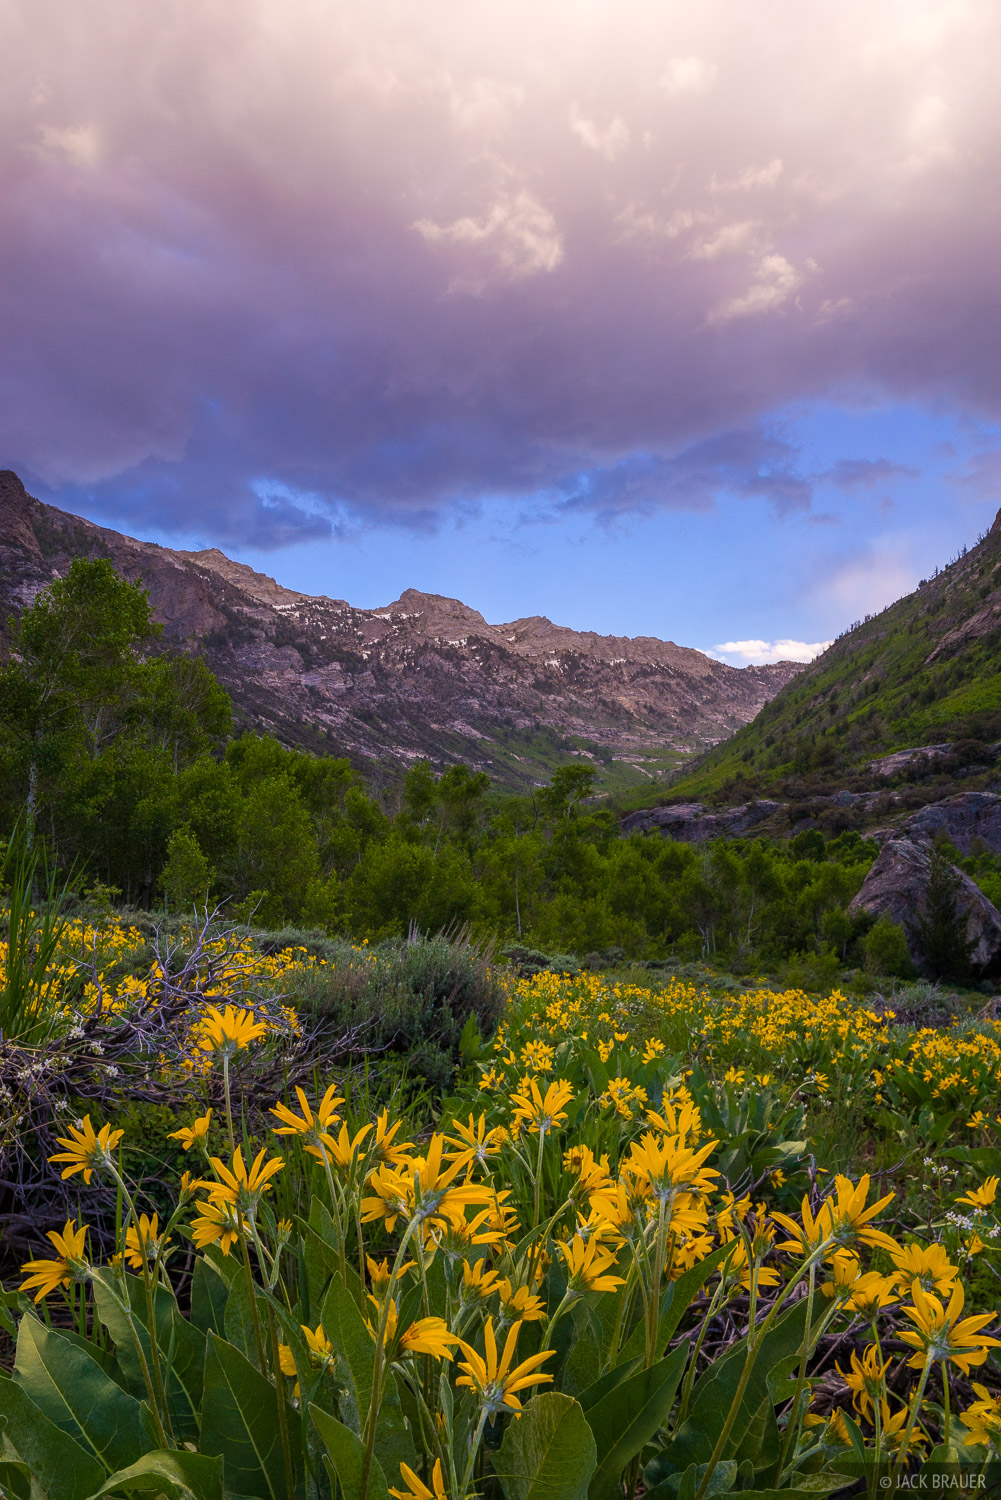 Lamoille Canyon, Nevada, Ruby Mountains, wildflowers, photo